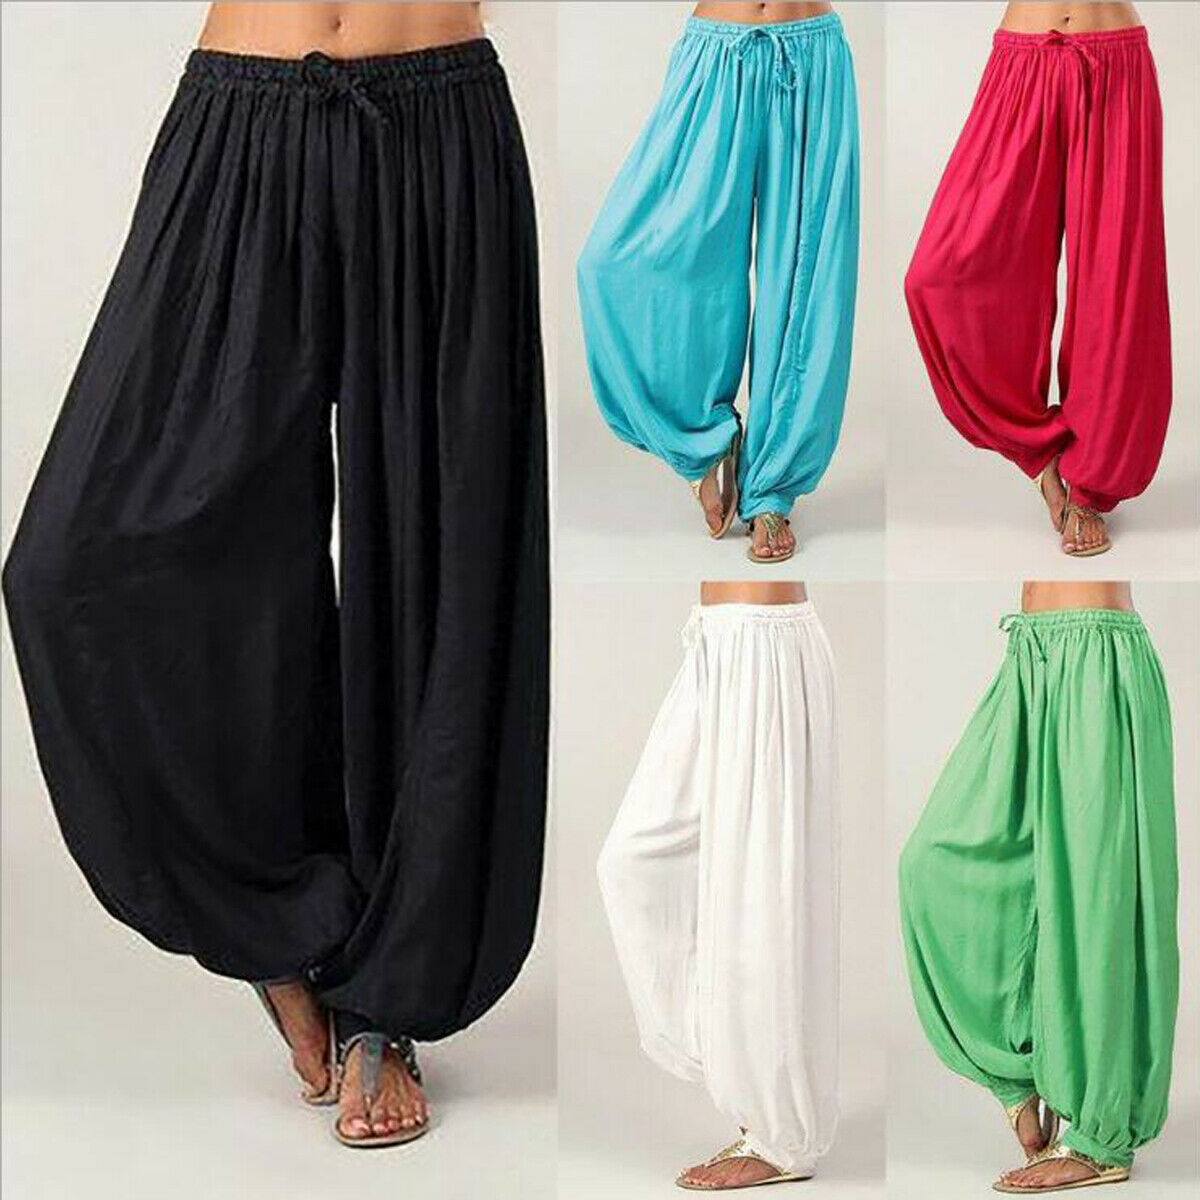 New Women Ladies Fashion Casual Indian Style Pants Solid Baggy Loose Comfy Long High Waist Harem Pants Trousers Plus Size